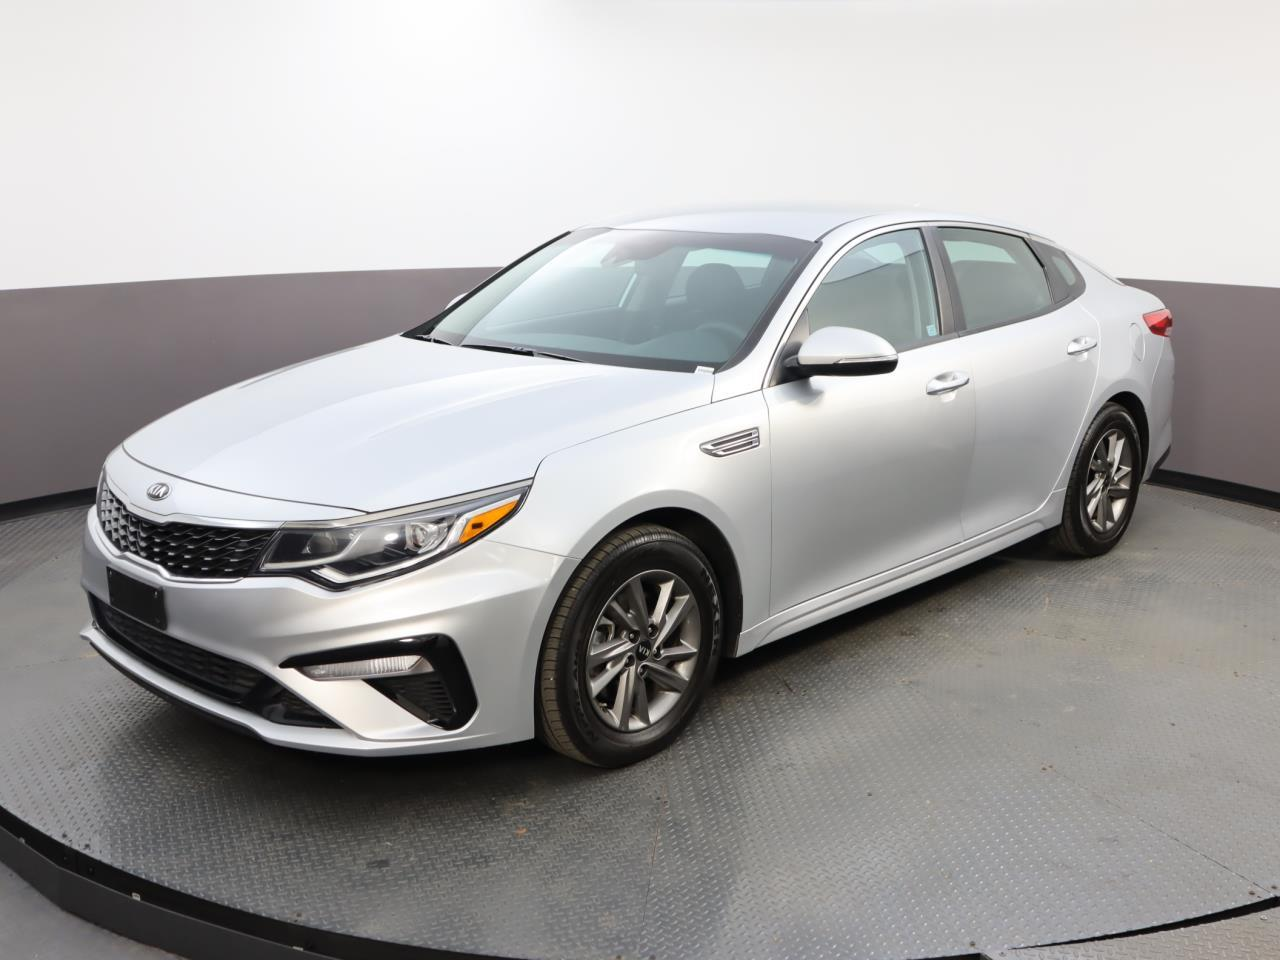 Used KIA OPTIMA 2020 MIAMI LX